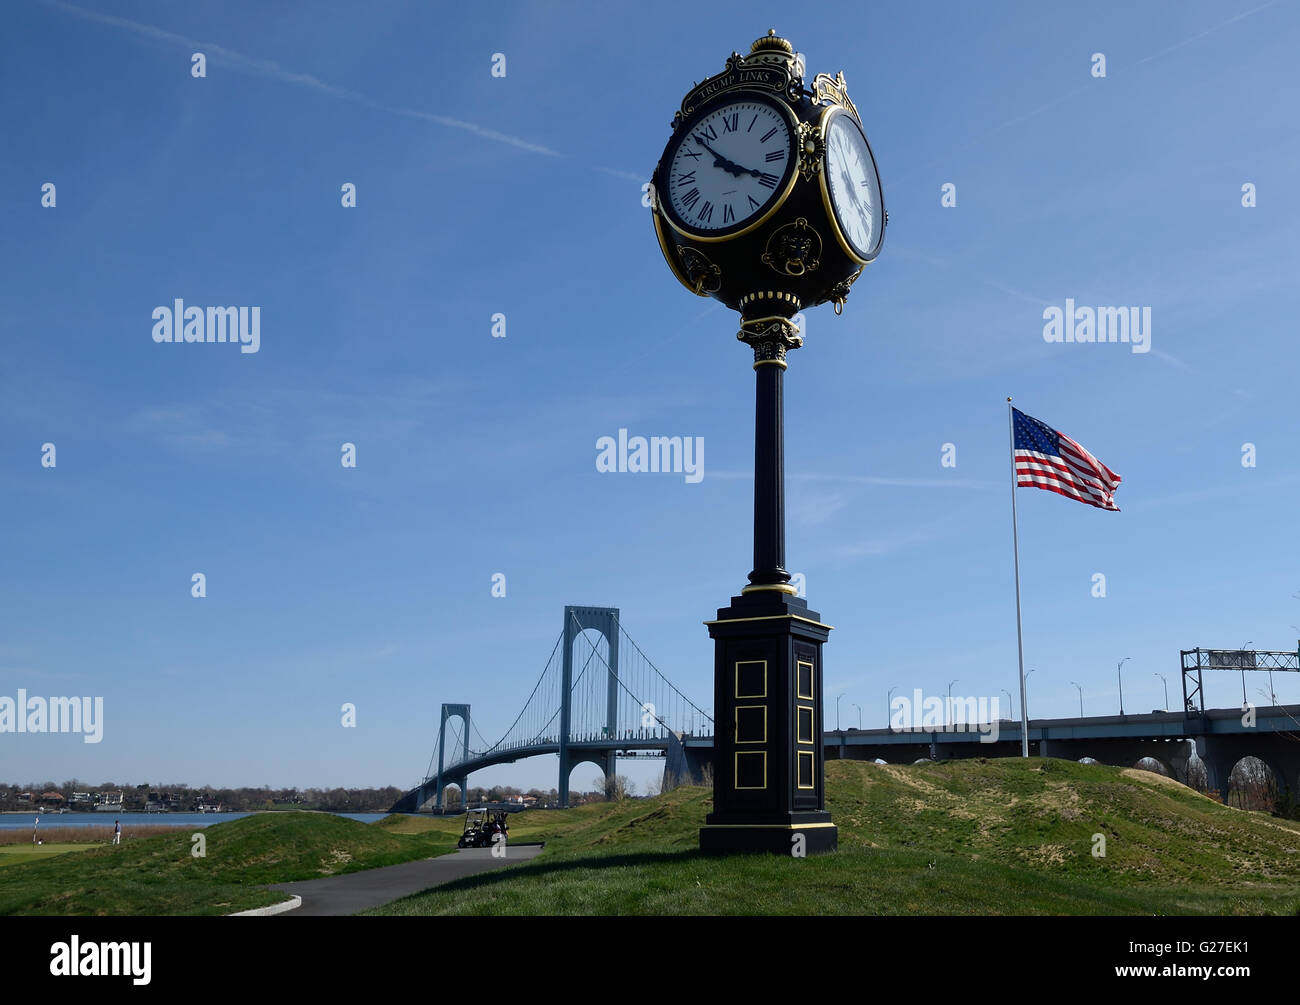 Trump Golf Links at Ferry Point with American Flag and Whitestone Bridge. - Stock Image